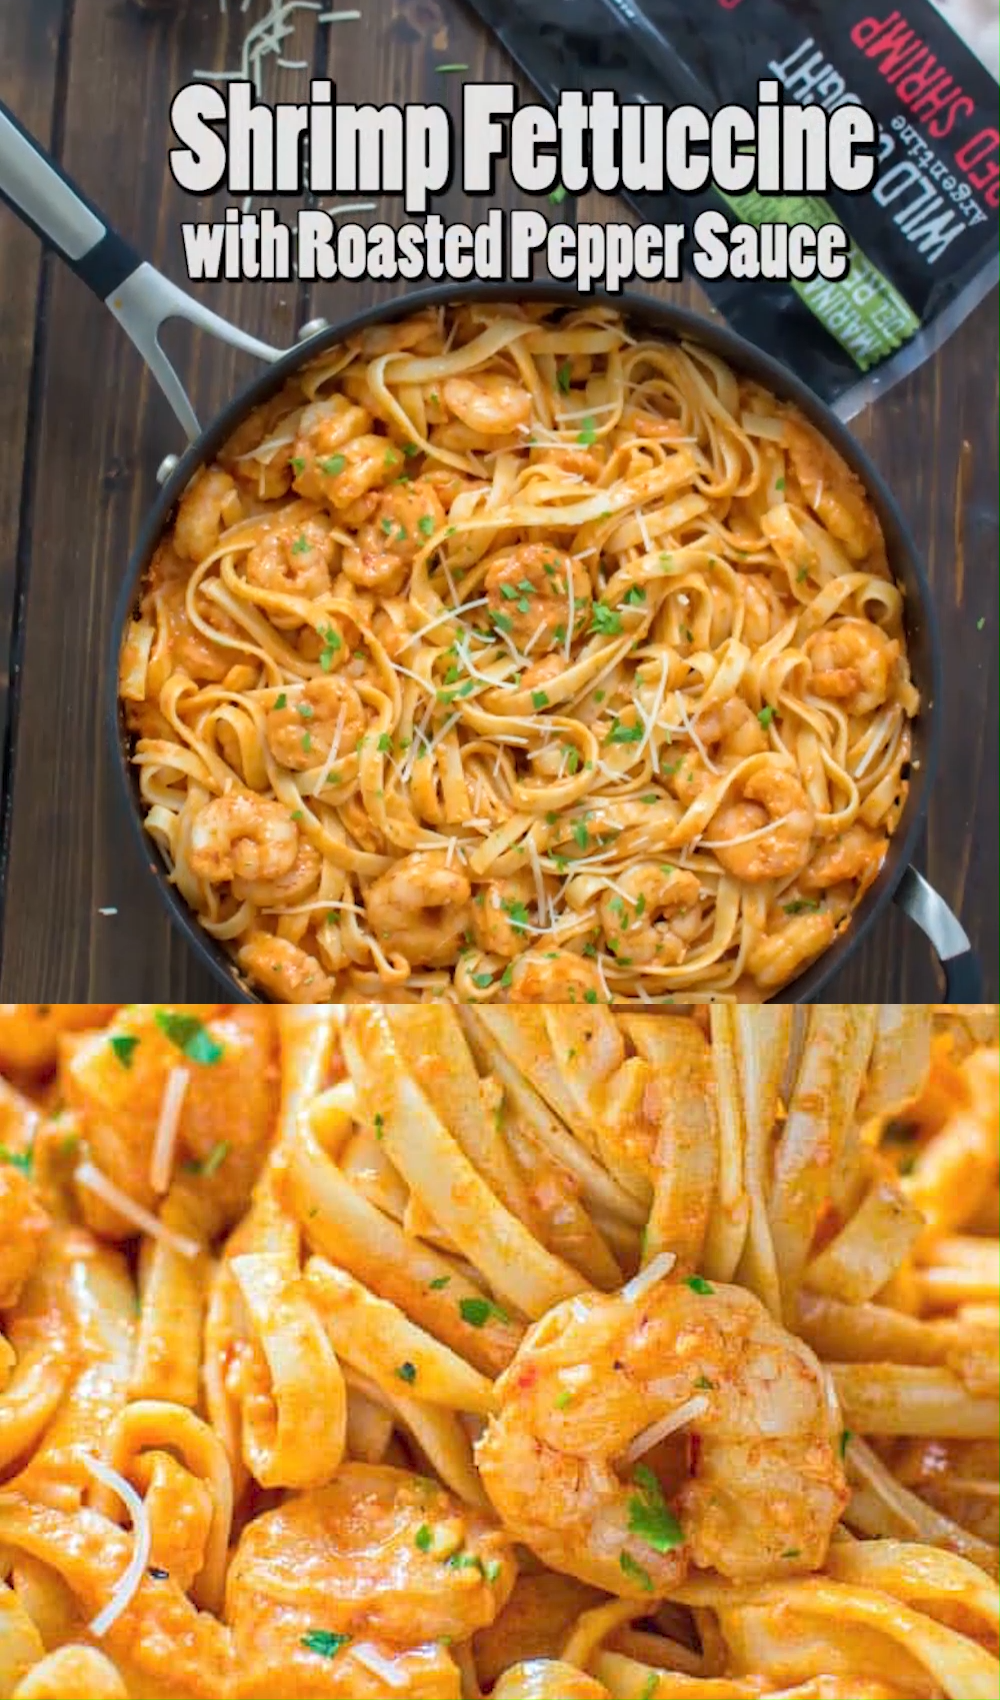 Shrimp Pasta with Roasted Pepper Sauce